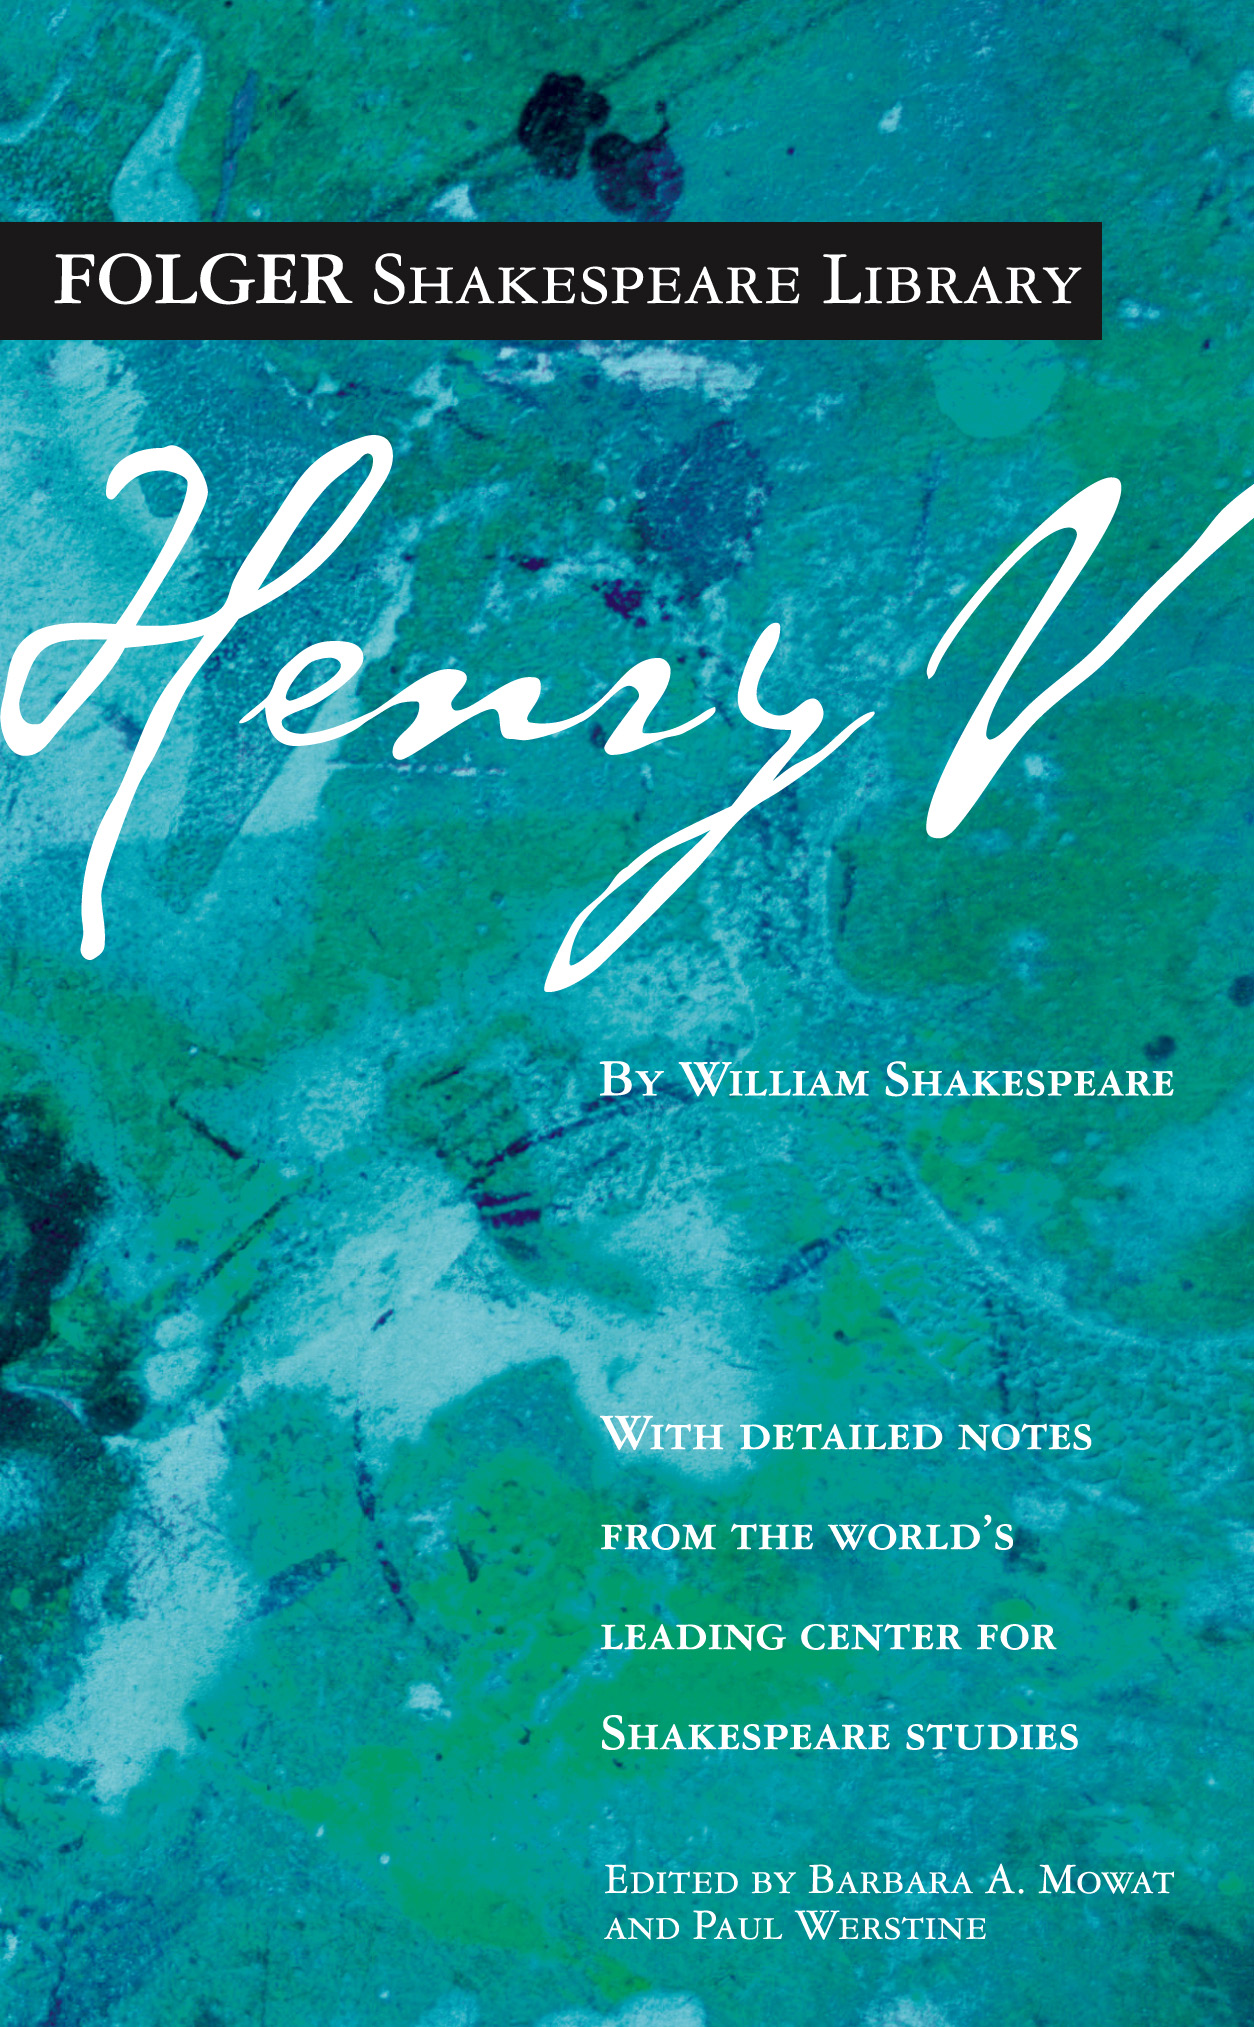 hamlet a glimpse into the mind of william shakespeare Hamlet: the series 126 likes adapted from william shakespeare by jemma alix levy we've made it available for a glimpse of things past.